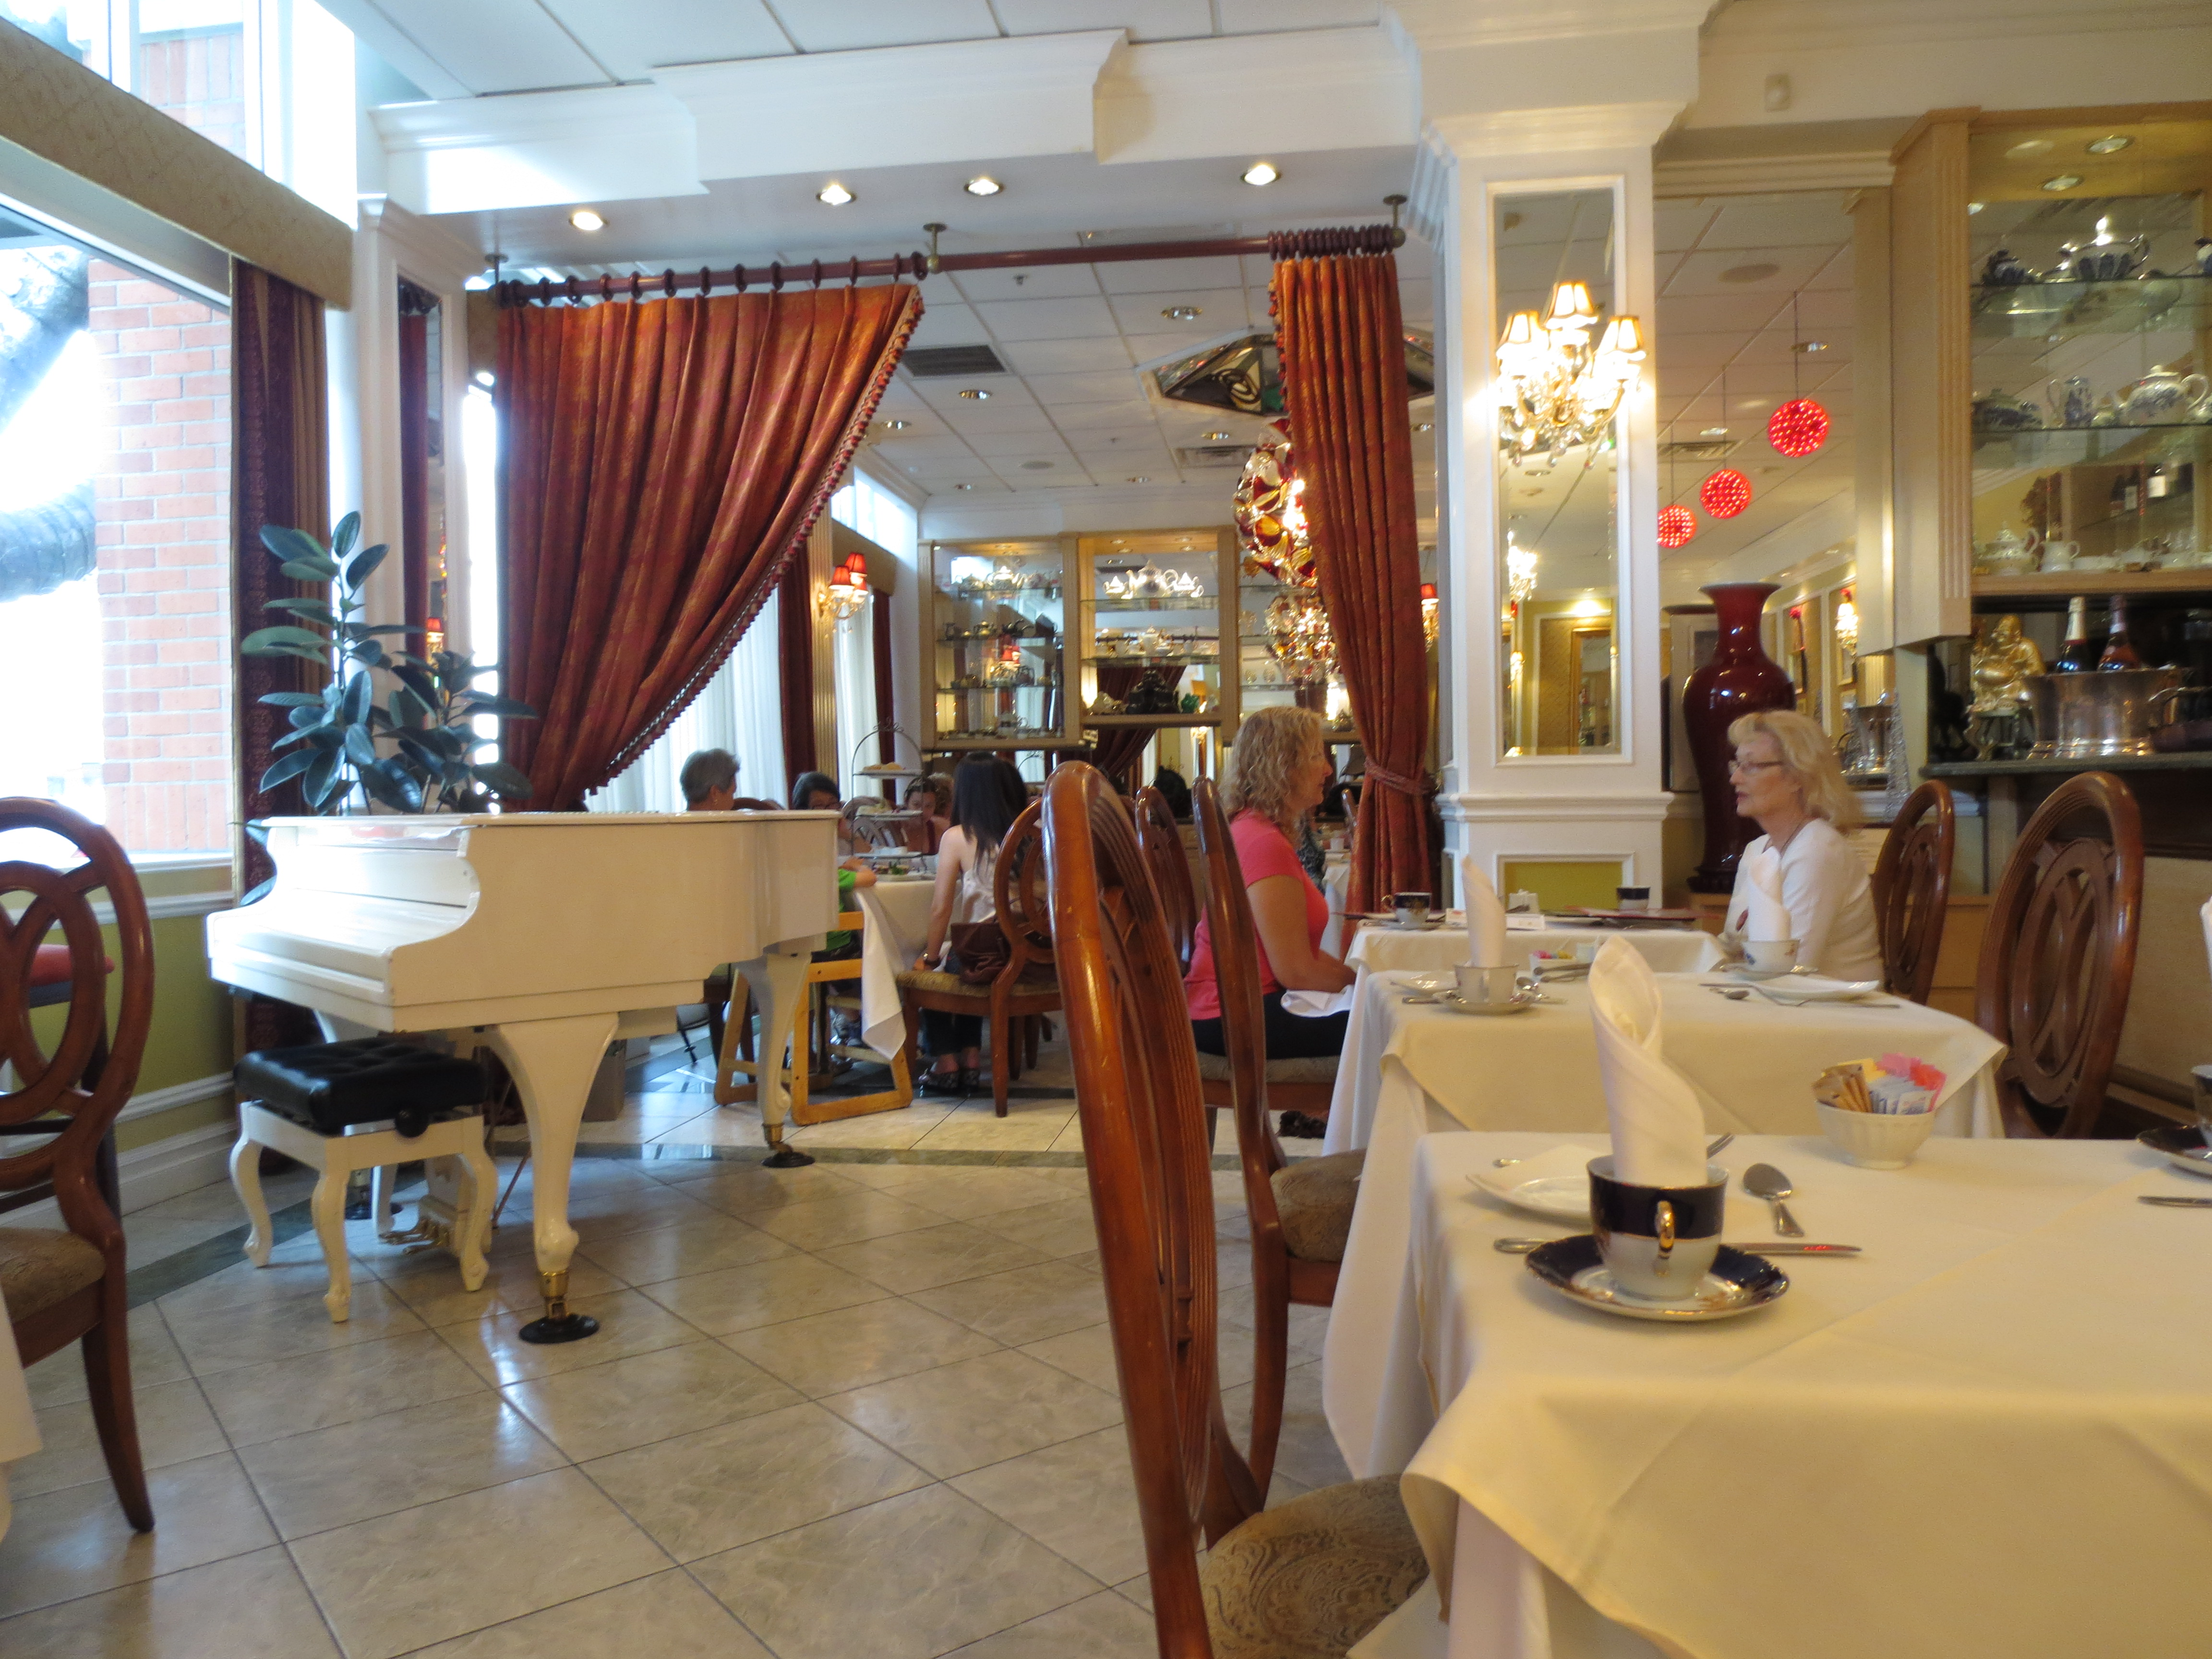 tea room review – Once Upon an Afternoon Tea